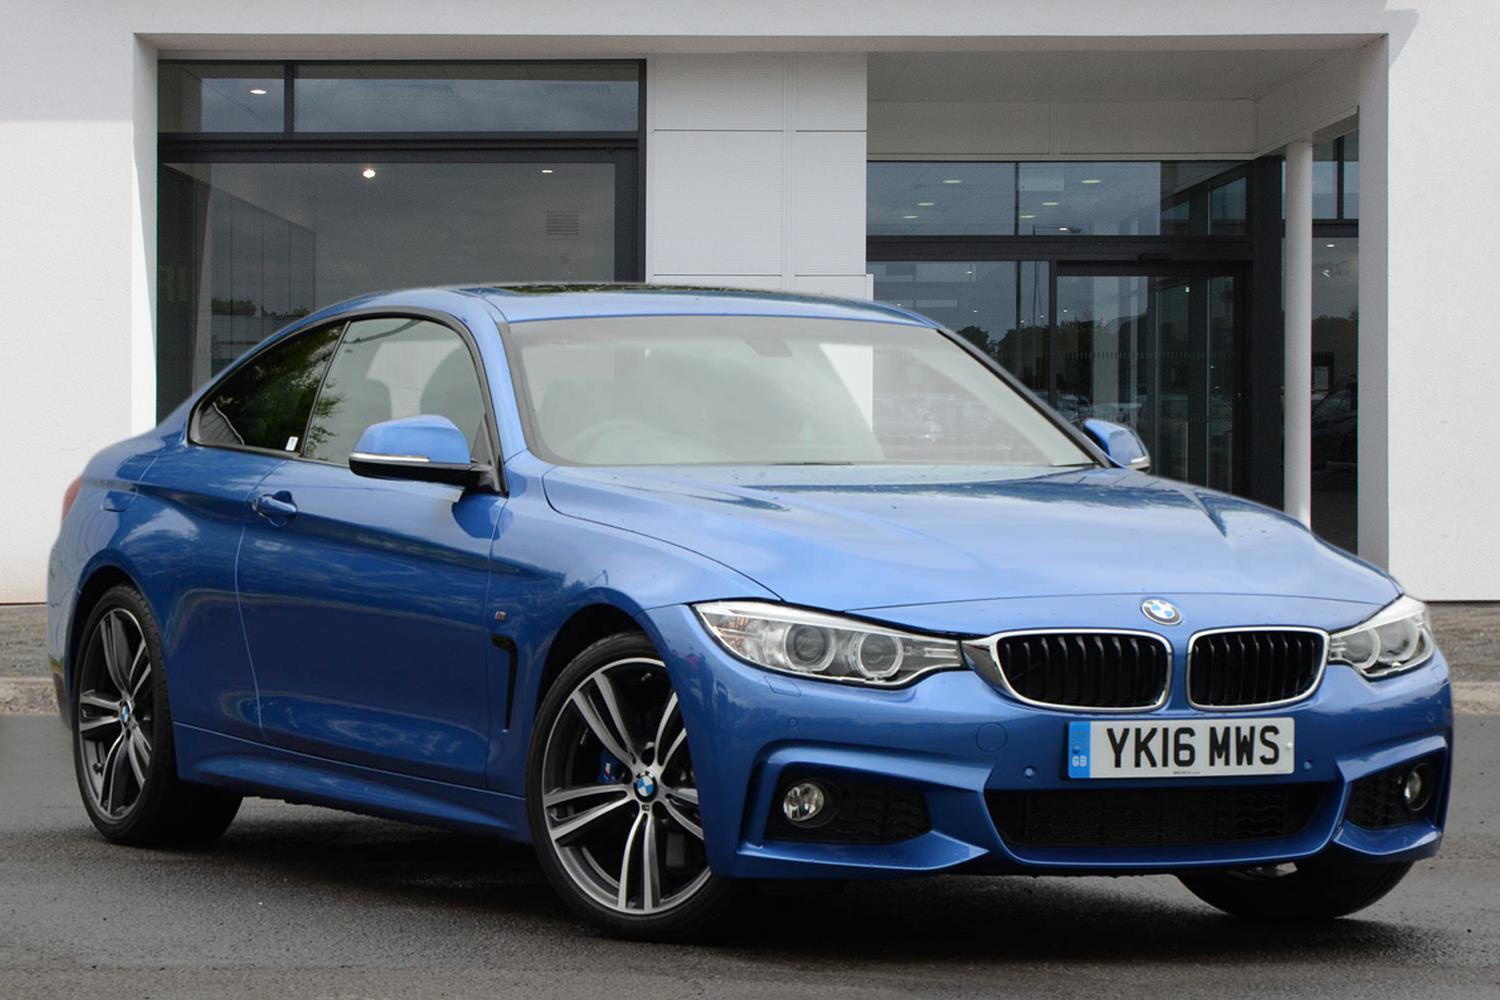 BMW 4 Series Coupé YK16MWS - Image 2